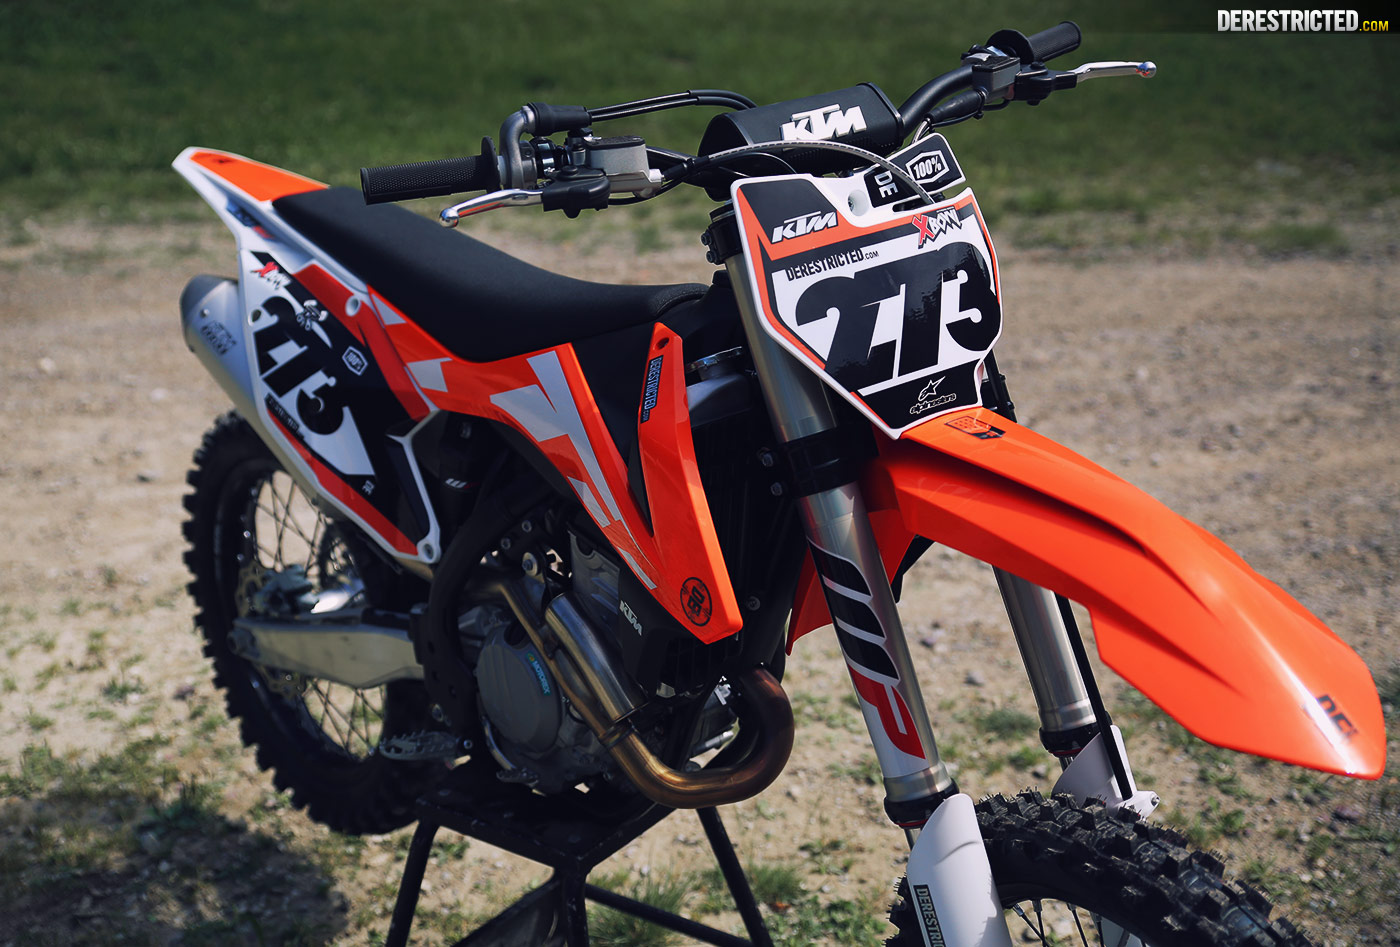 2016 ktm 350 sx-f | first look and first ride | derestricted